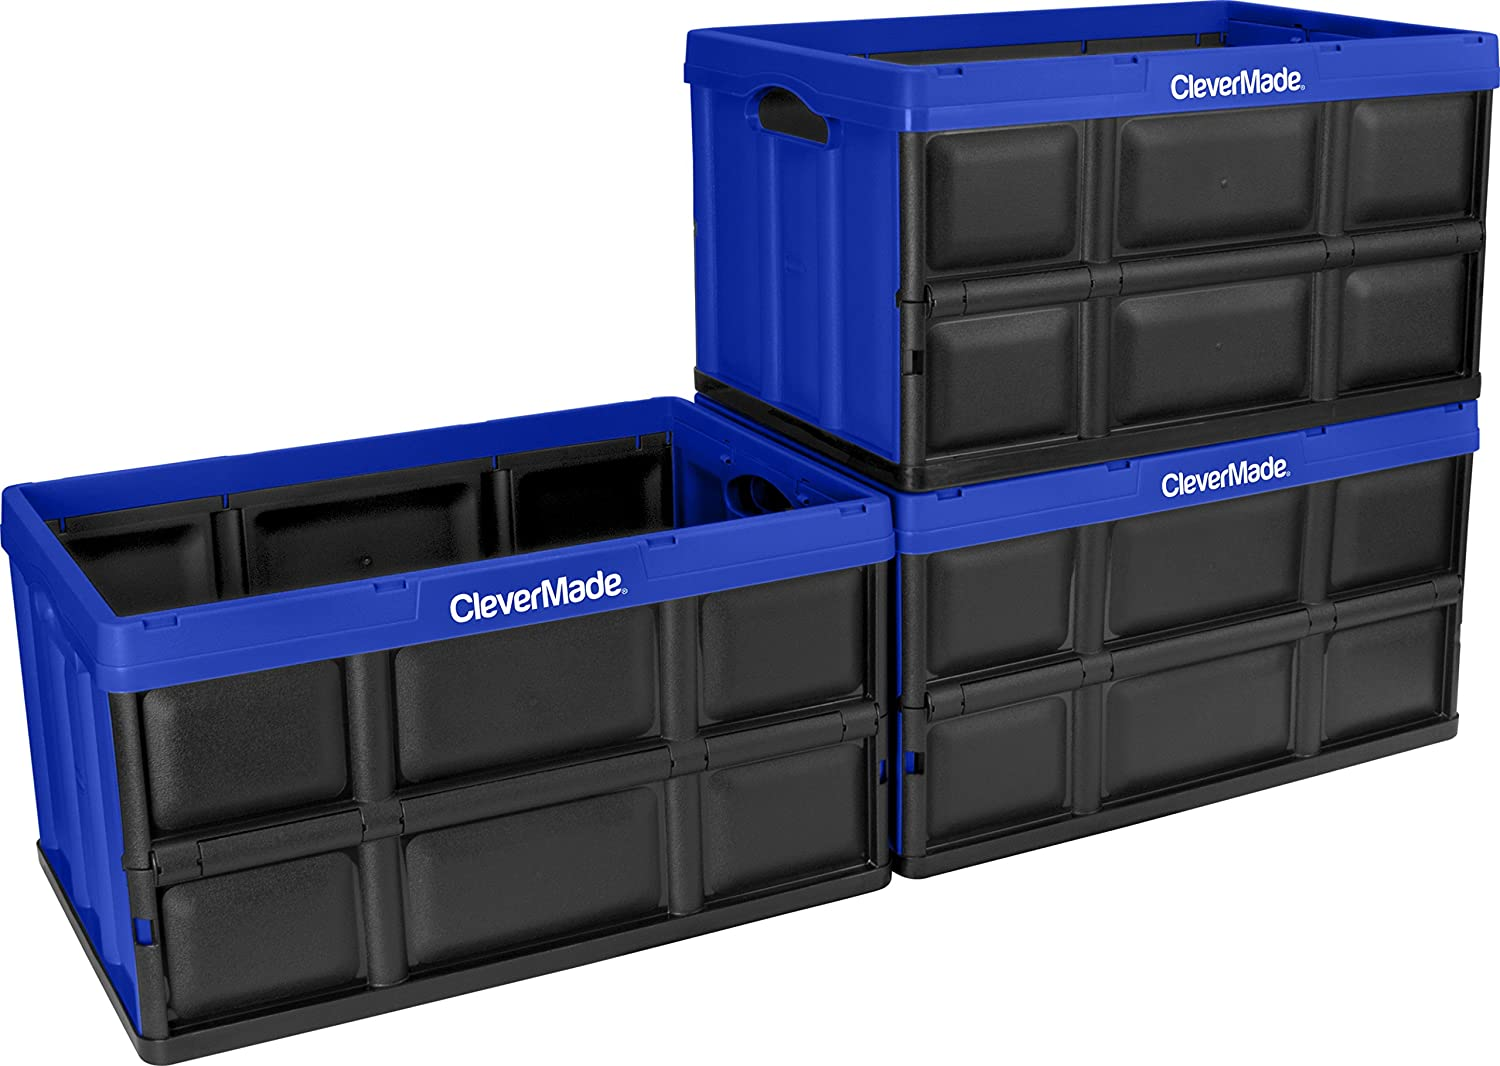 CleverMade 62L Collapsible Storage Bins - Durable Folding Plastic Stackable Utility Crates, Solid Wall CleverCrates, 3 Pack, Royal Blue